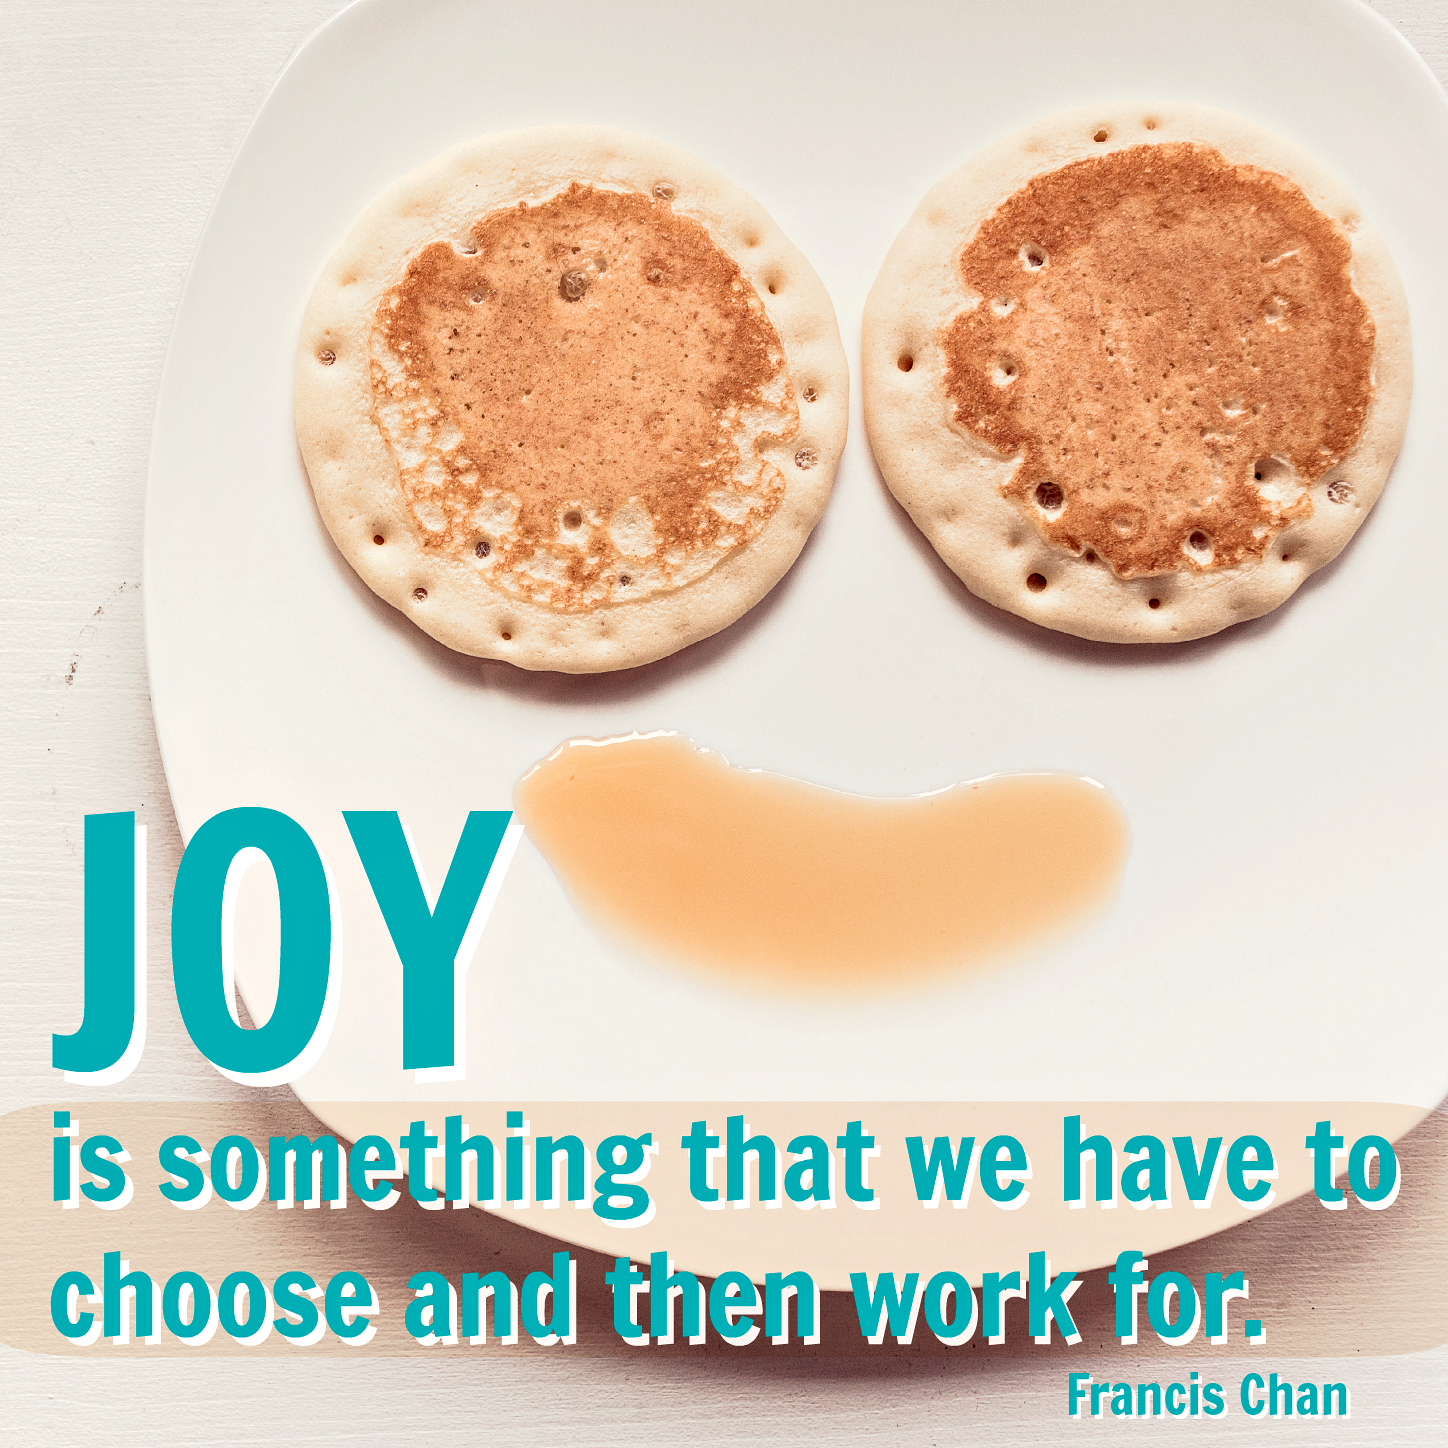 Joy is a choice, and we have to work for it! But so thankful for our true source of joy, God!